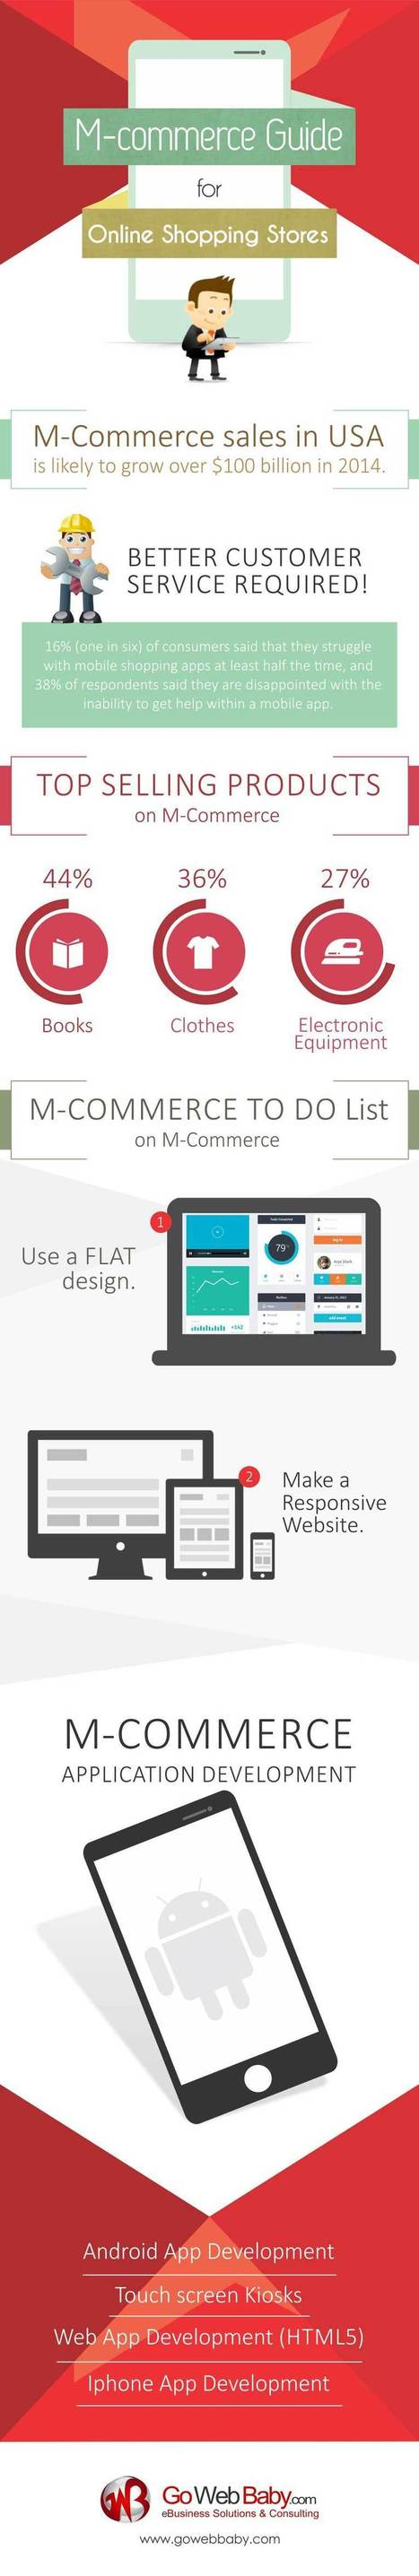 M-commerce guide for online shopping stores | eCommerce Web Design | Scoop.it